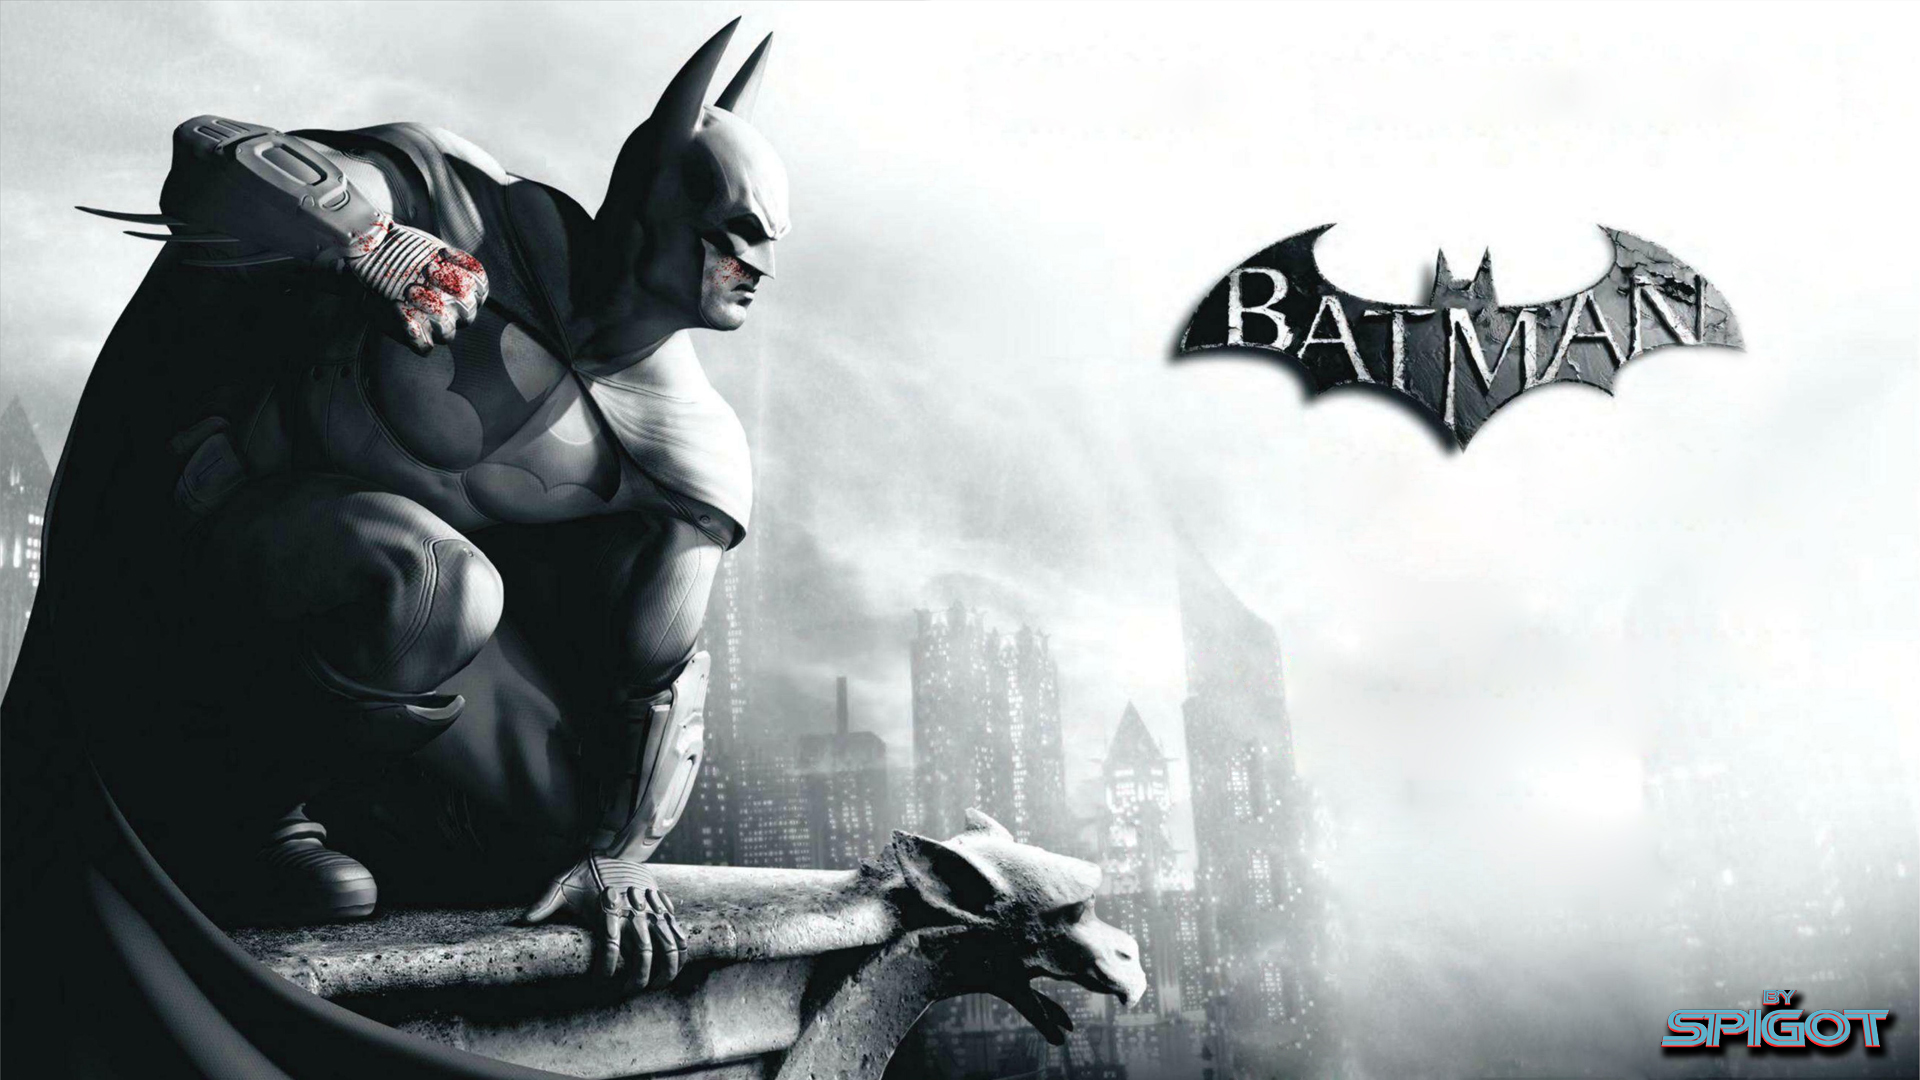 Batman Arkham City Xbox 360 wallpaper   631818 1920x1080